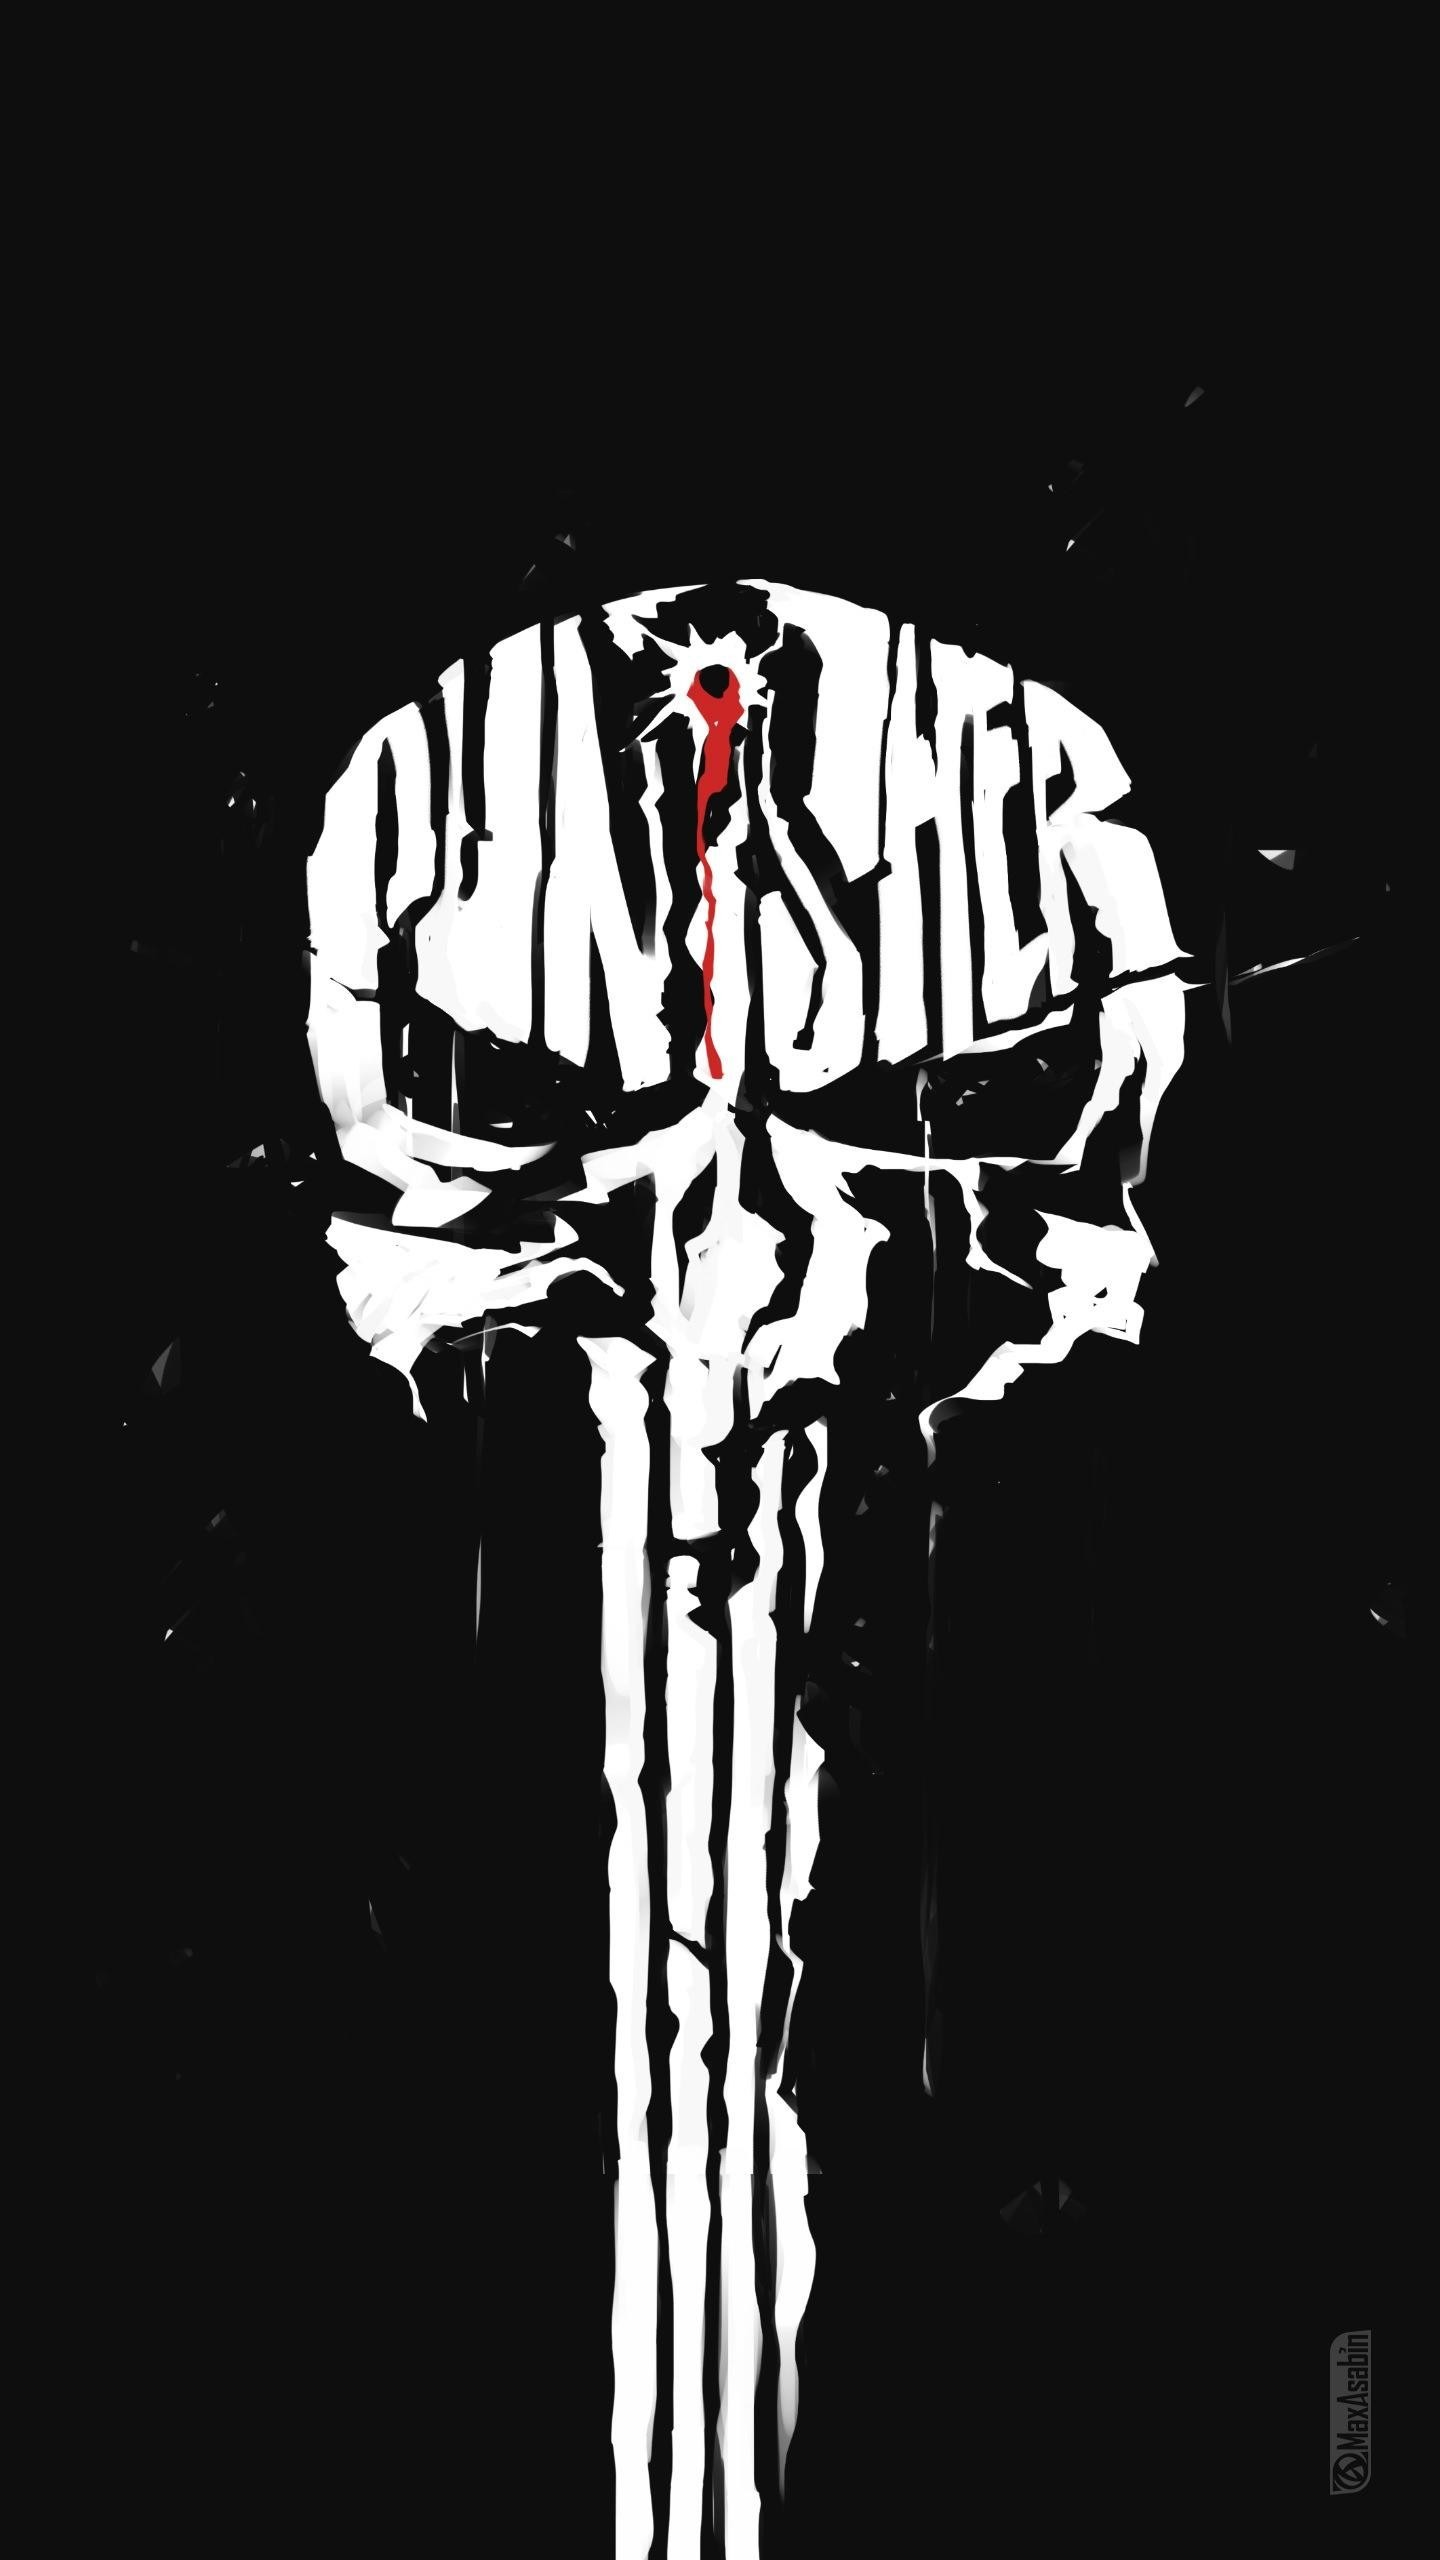 Res: 1440x2560, Download Source · Punisher Skull Wallpaper Iphone Galleryimage co